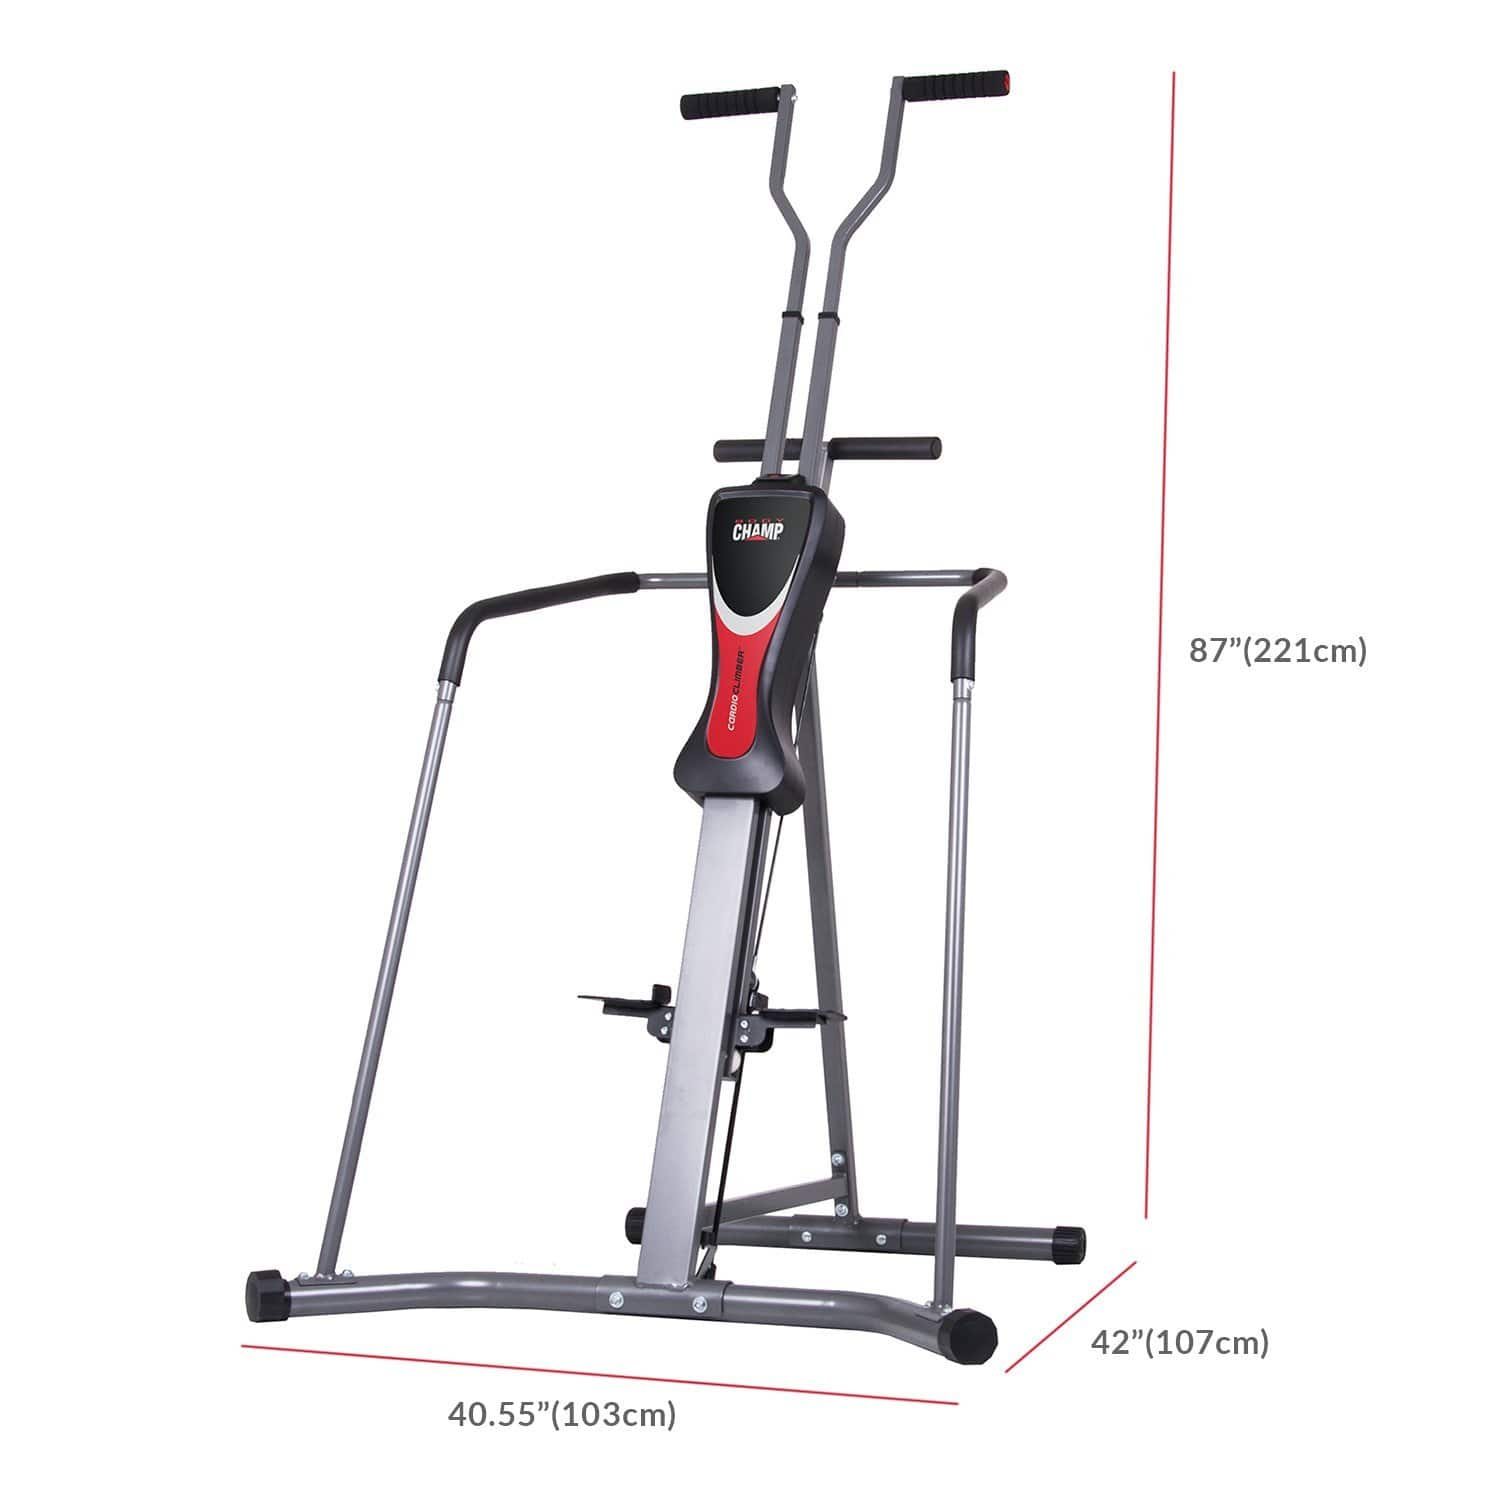 Leisa Hart Stair Stepper / Climber @ Amazon $119.00 + tax after coupon